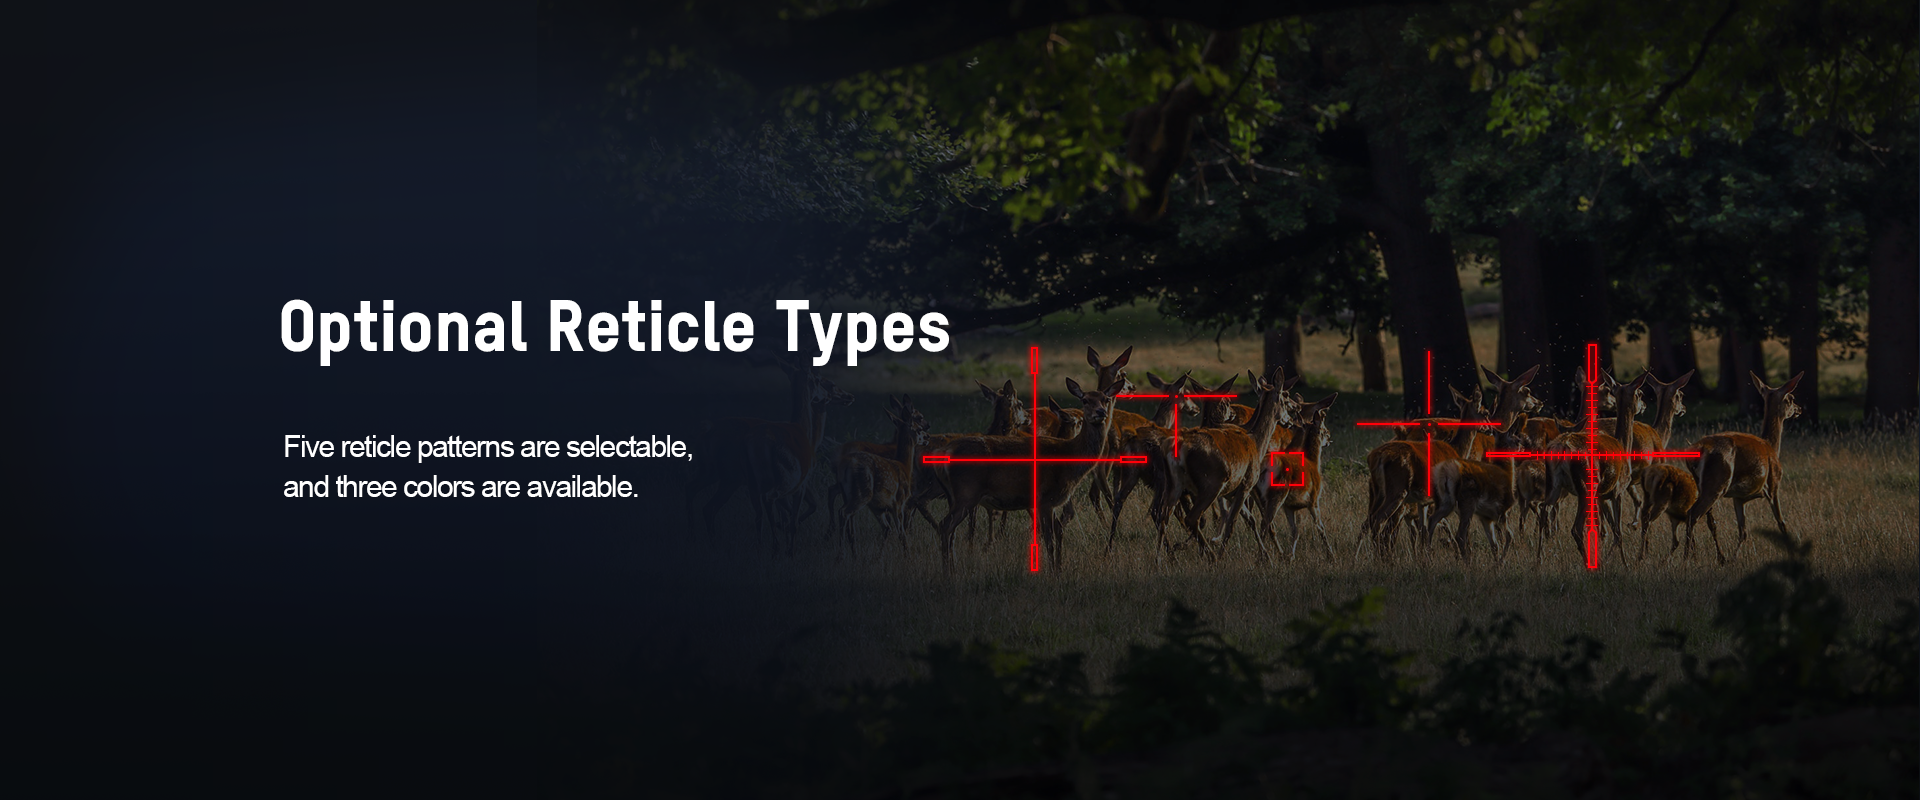 03-Optional Reticle Types-Scope-thunder  .png